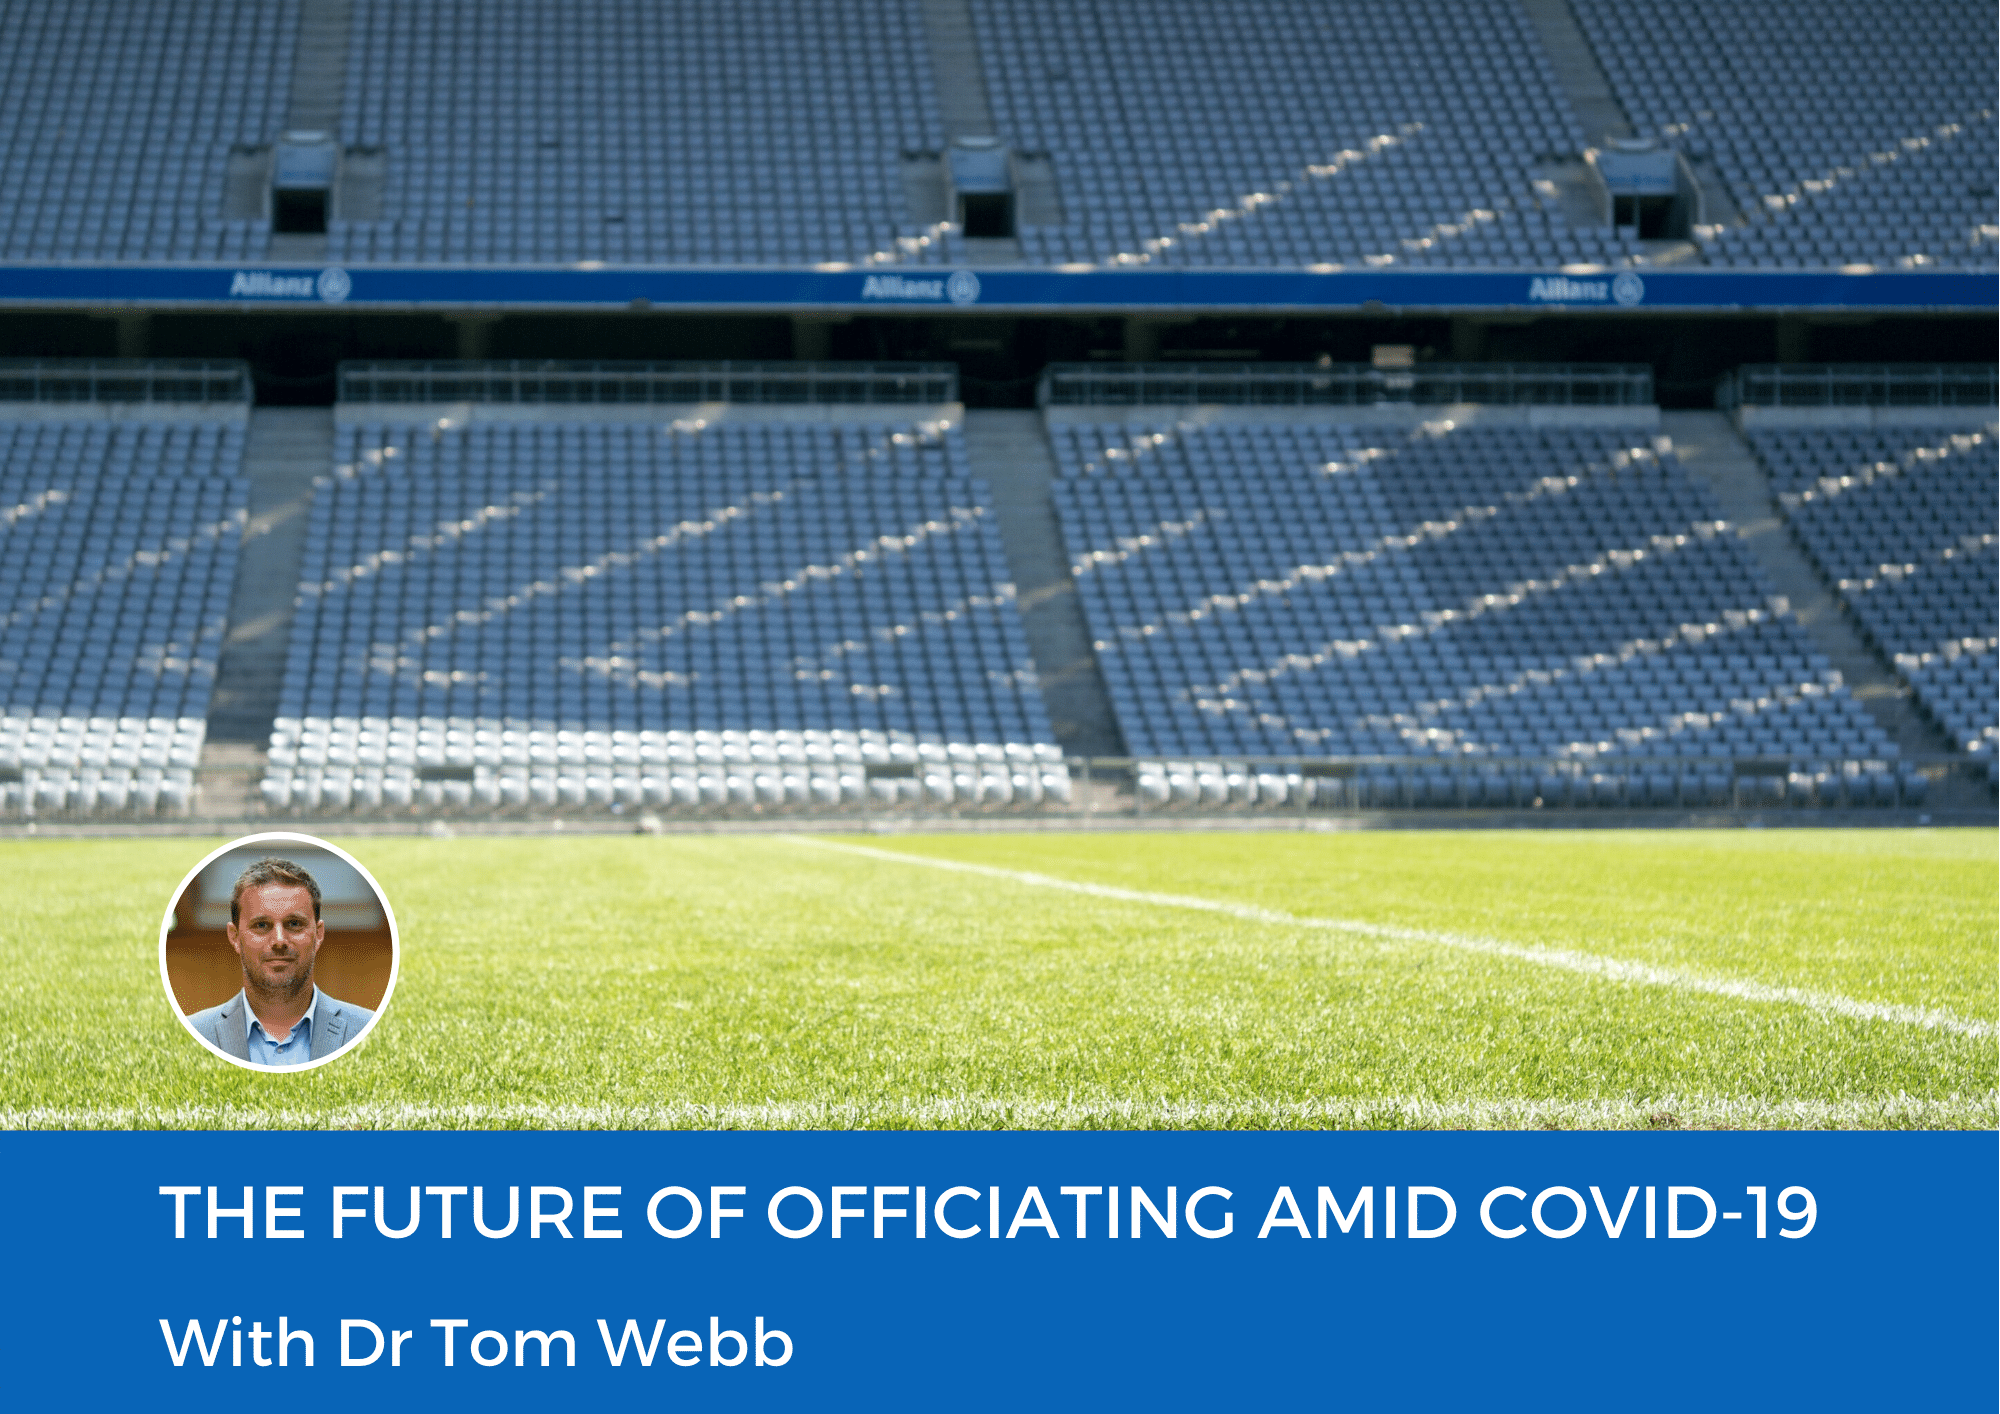 The Future of Officiating Amid COVID-19